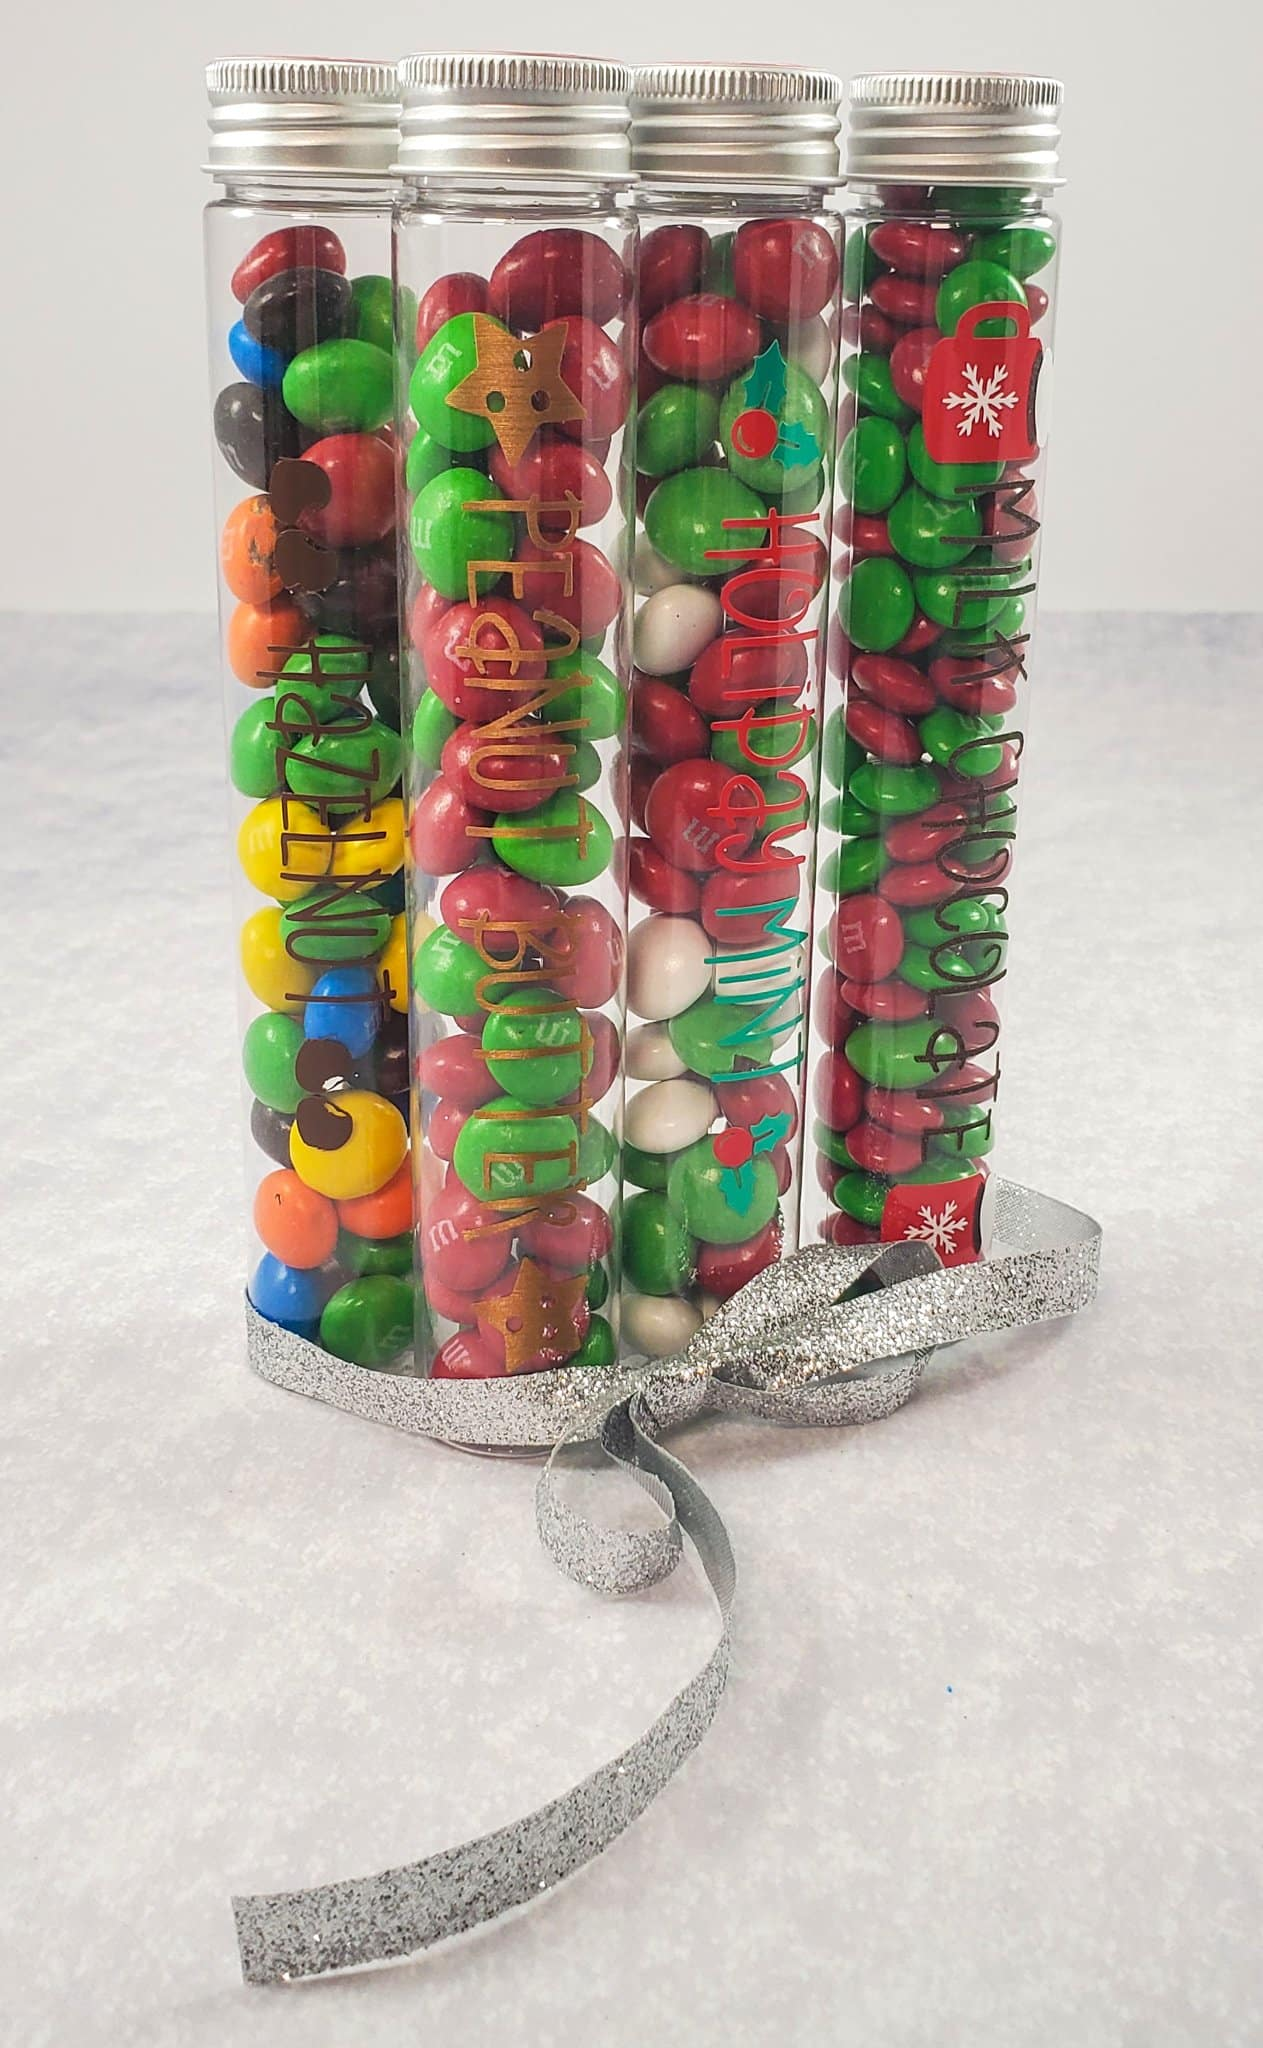 Four completed Candy Containers